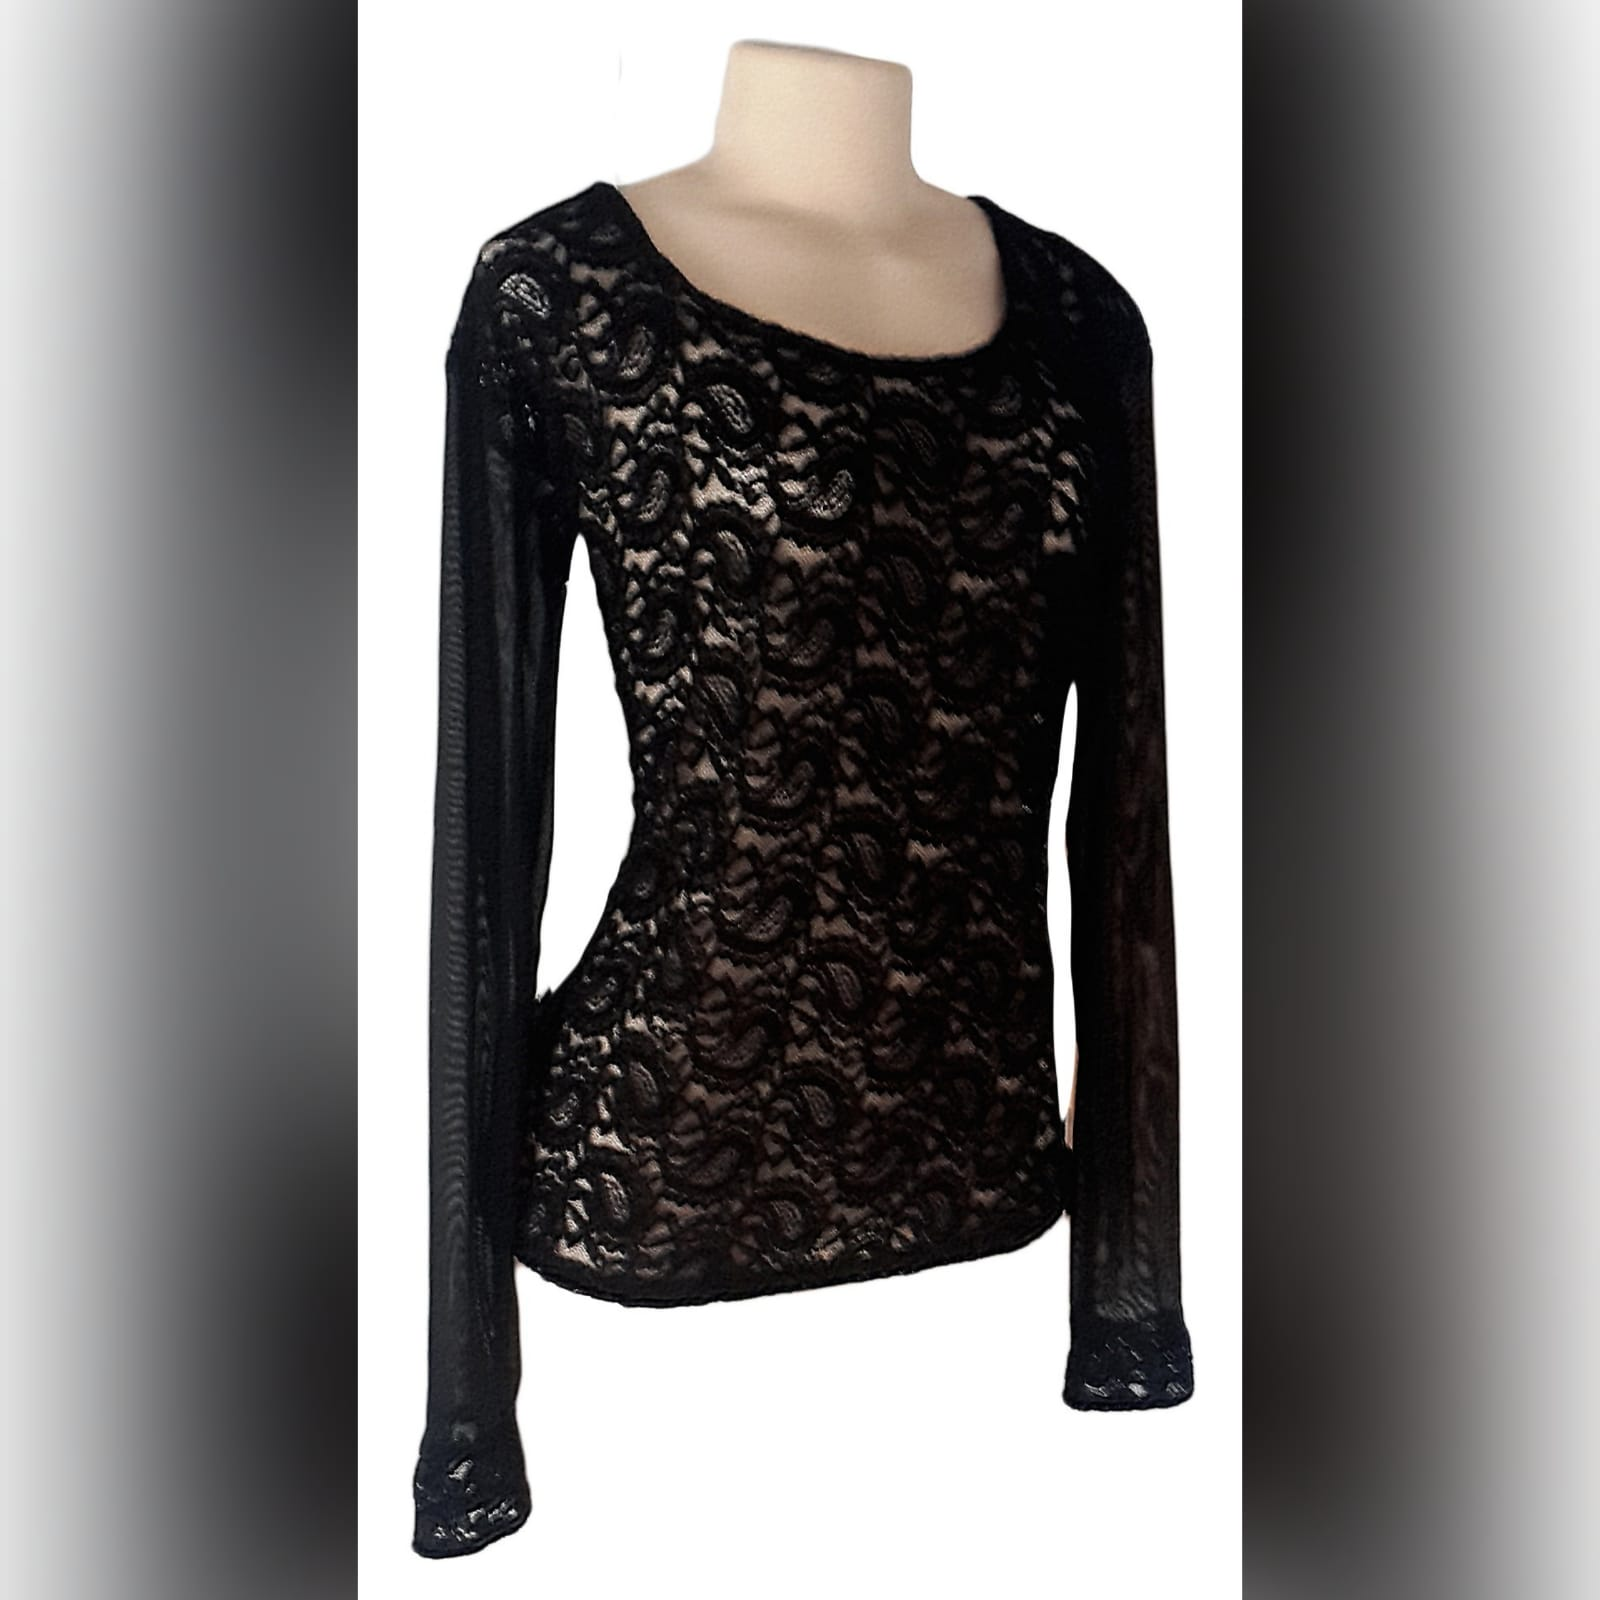 Black sheer lace long sleeve top 1 black sheer lace, long sleeve matric after party, smart casual top